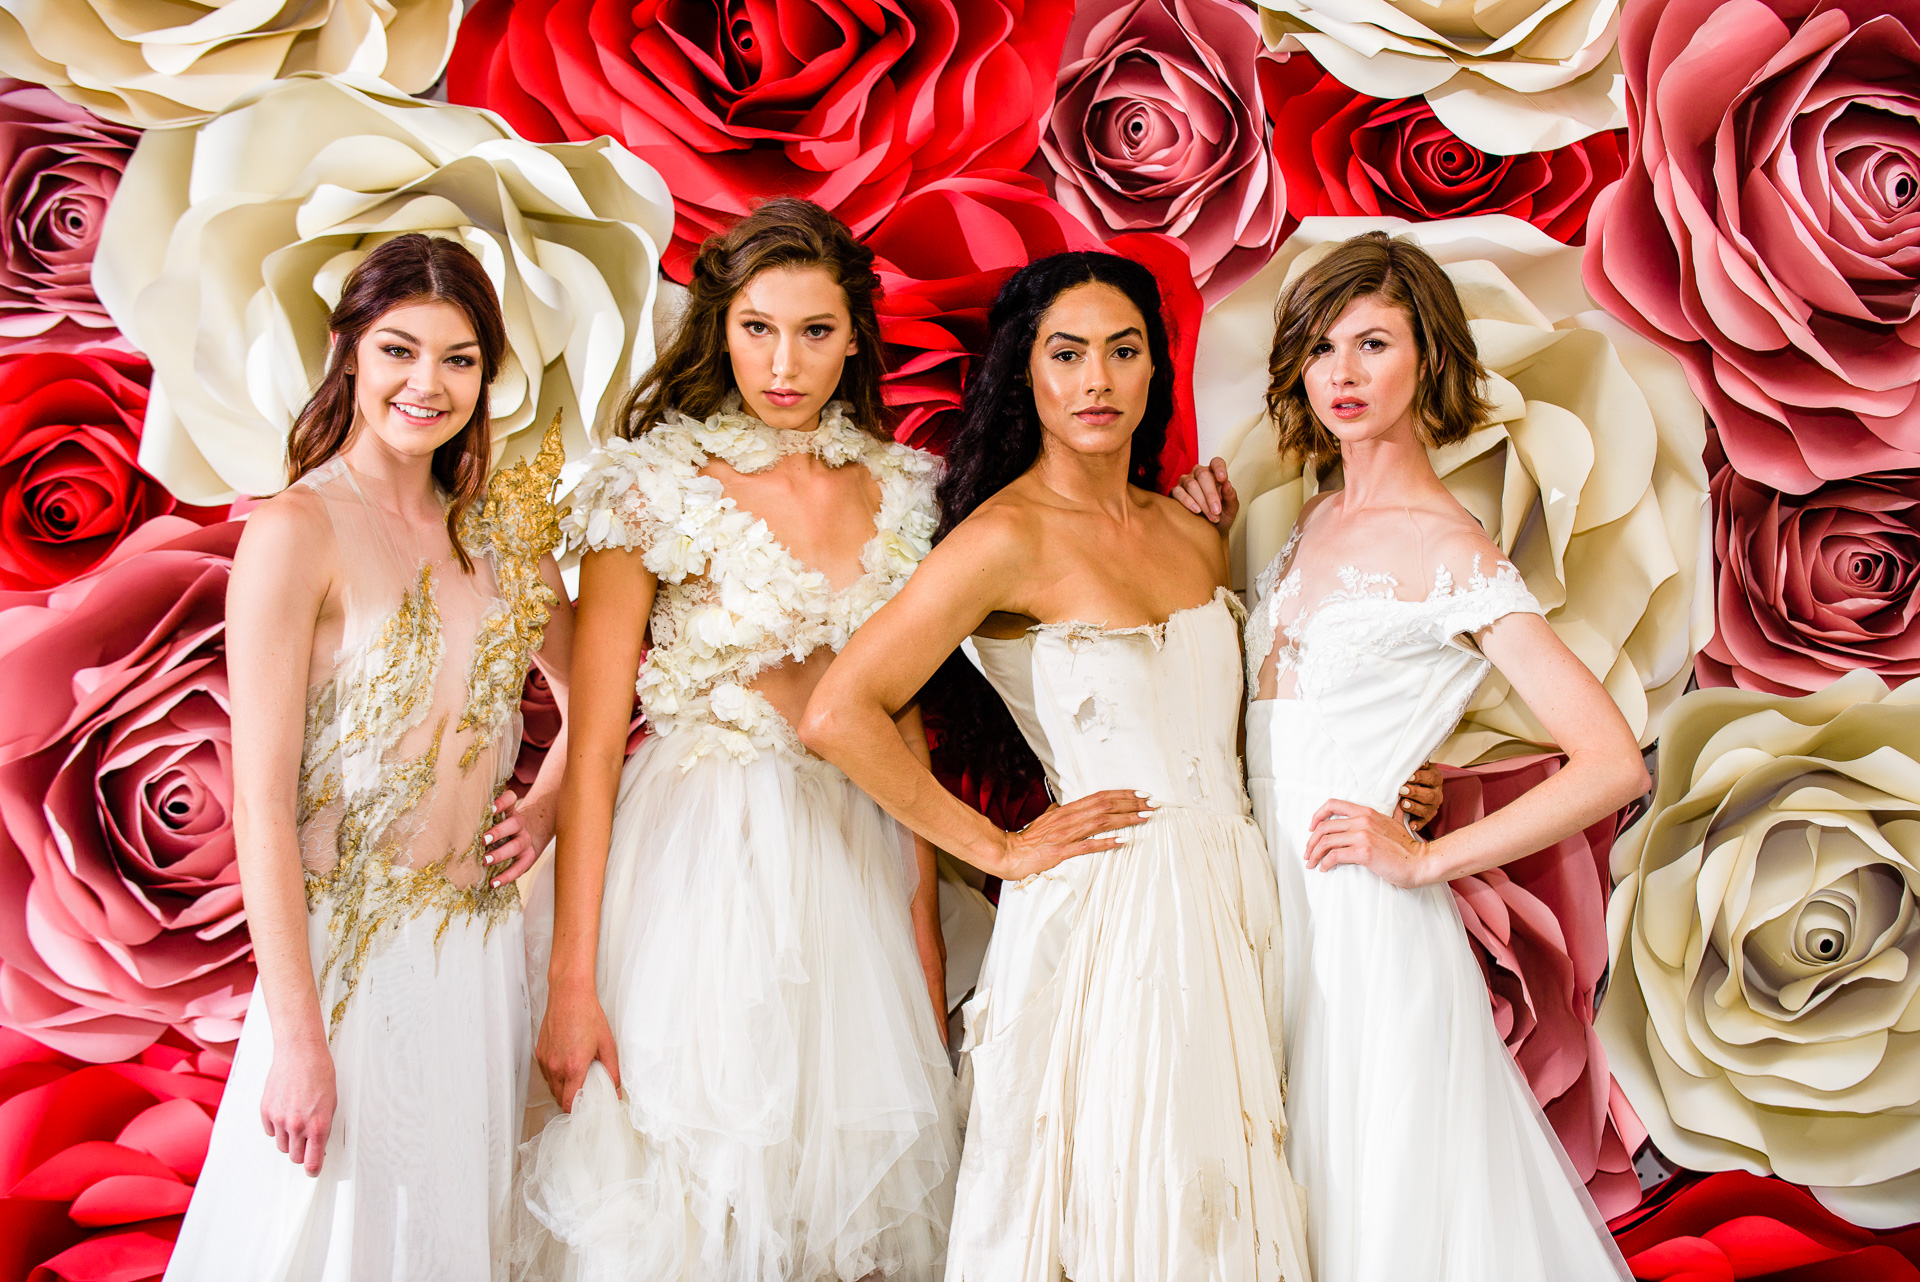 a few of our lovely models in Michelle Hebert  bridal gown  couture from the runway show!